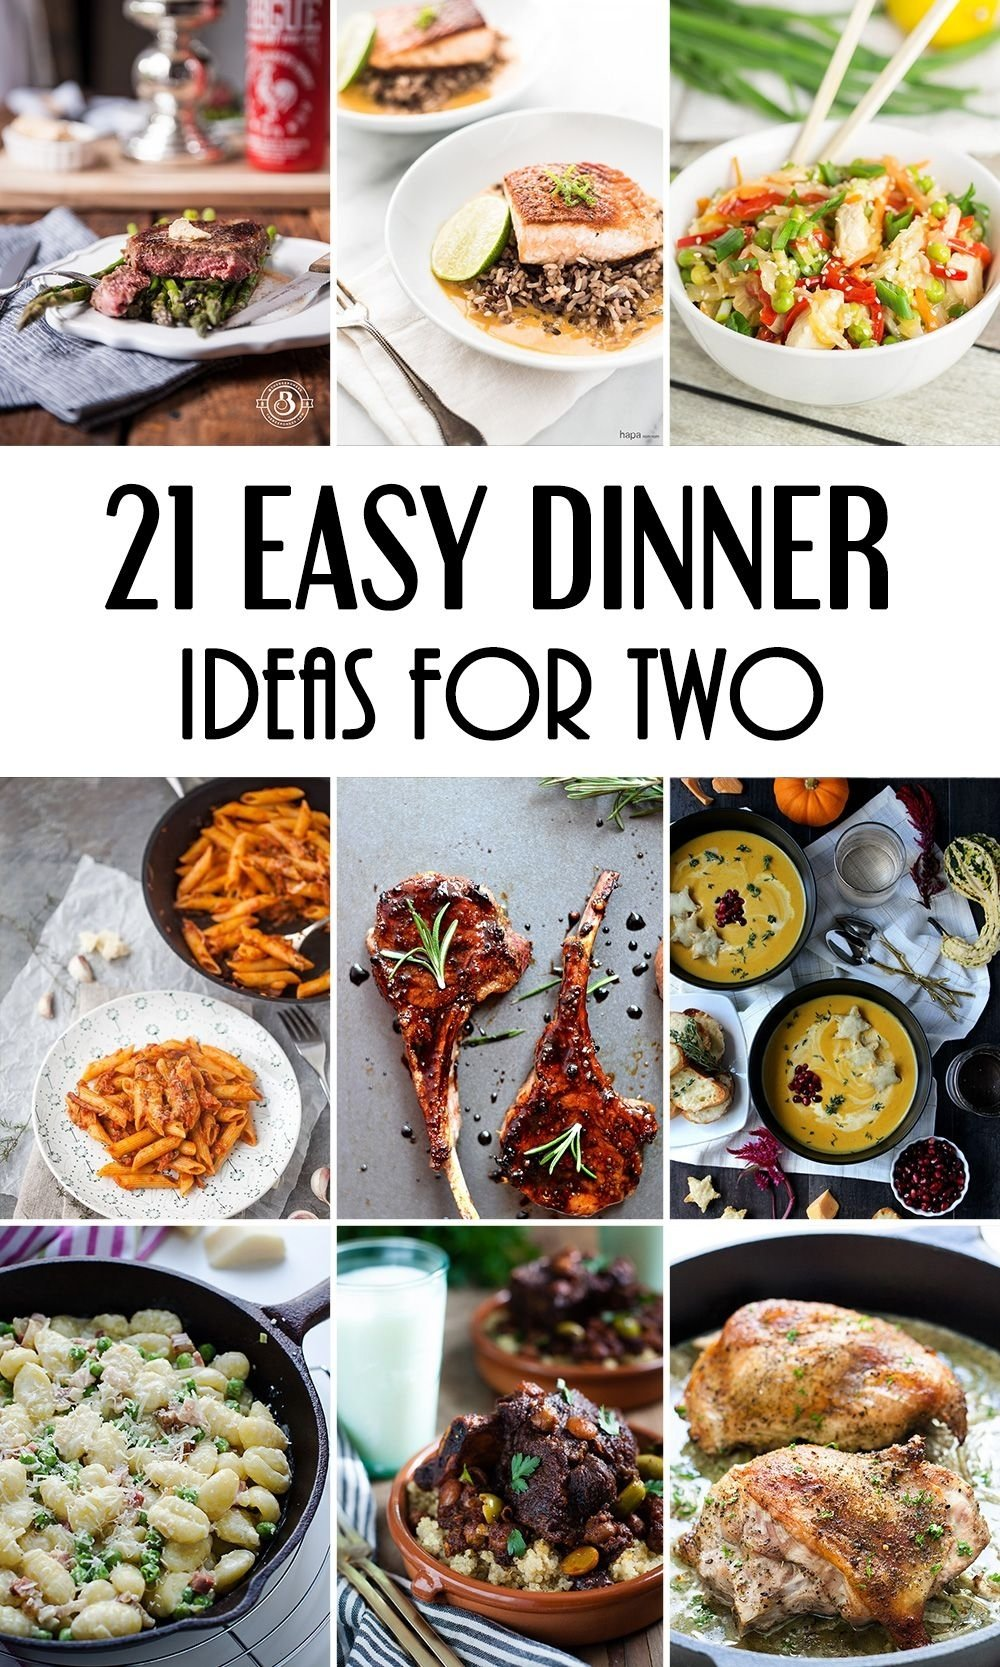 10 Lovely Dinner Ideas For Two Healthy 21 easy dinner ideas for two that will impress your loved one 22 2020